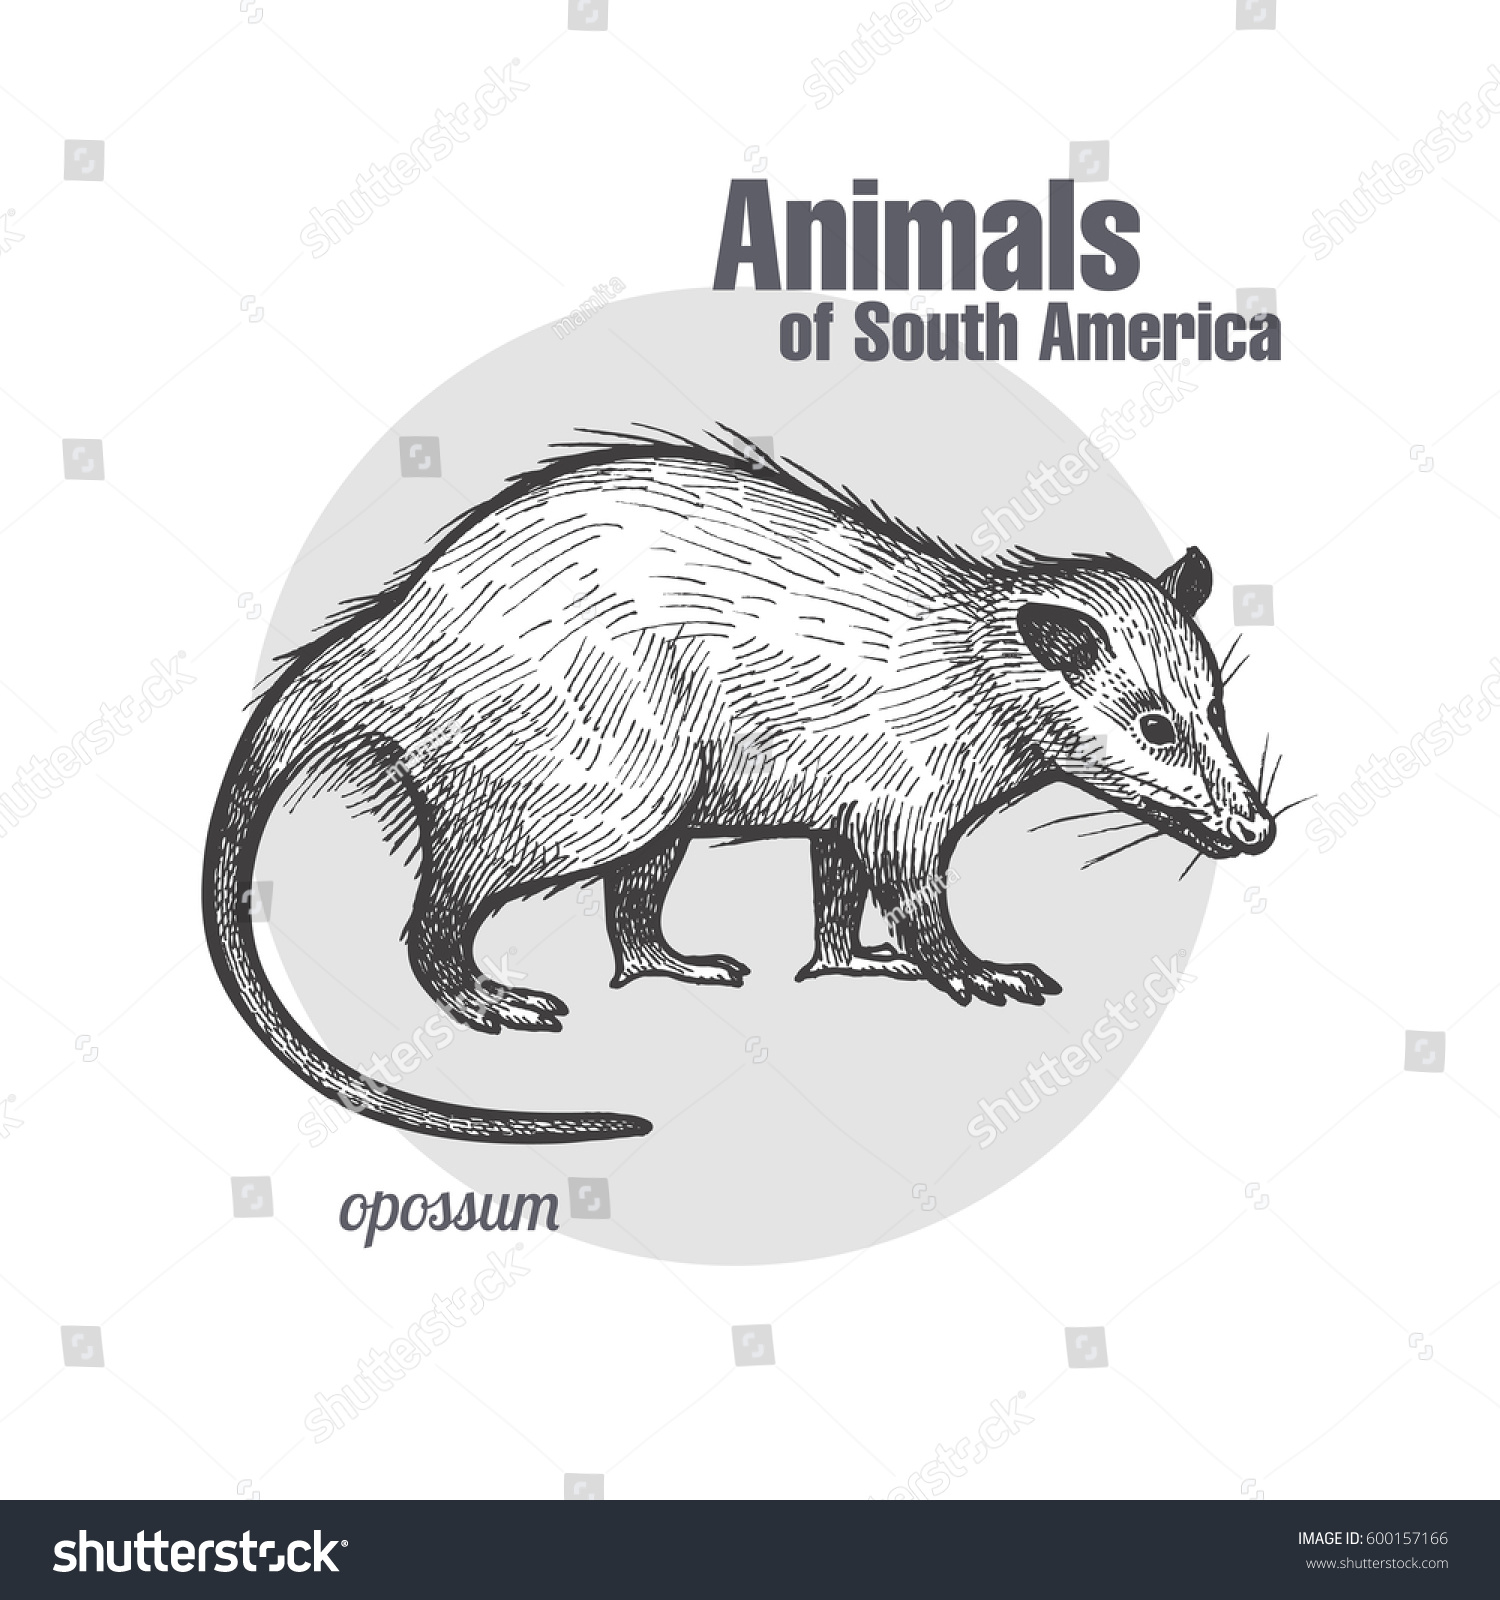 Opossum Hand Drawing Animals South America Stock Vektorgrafik